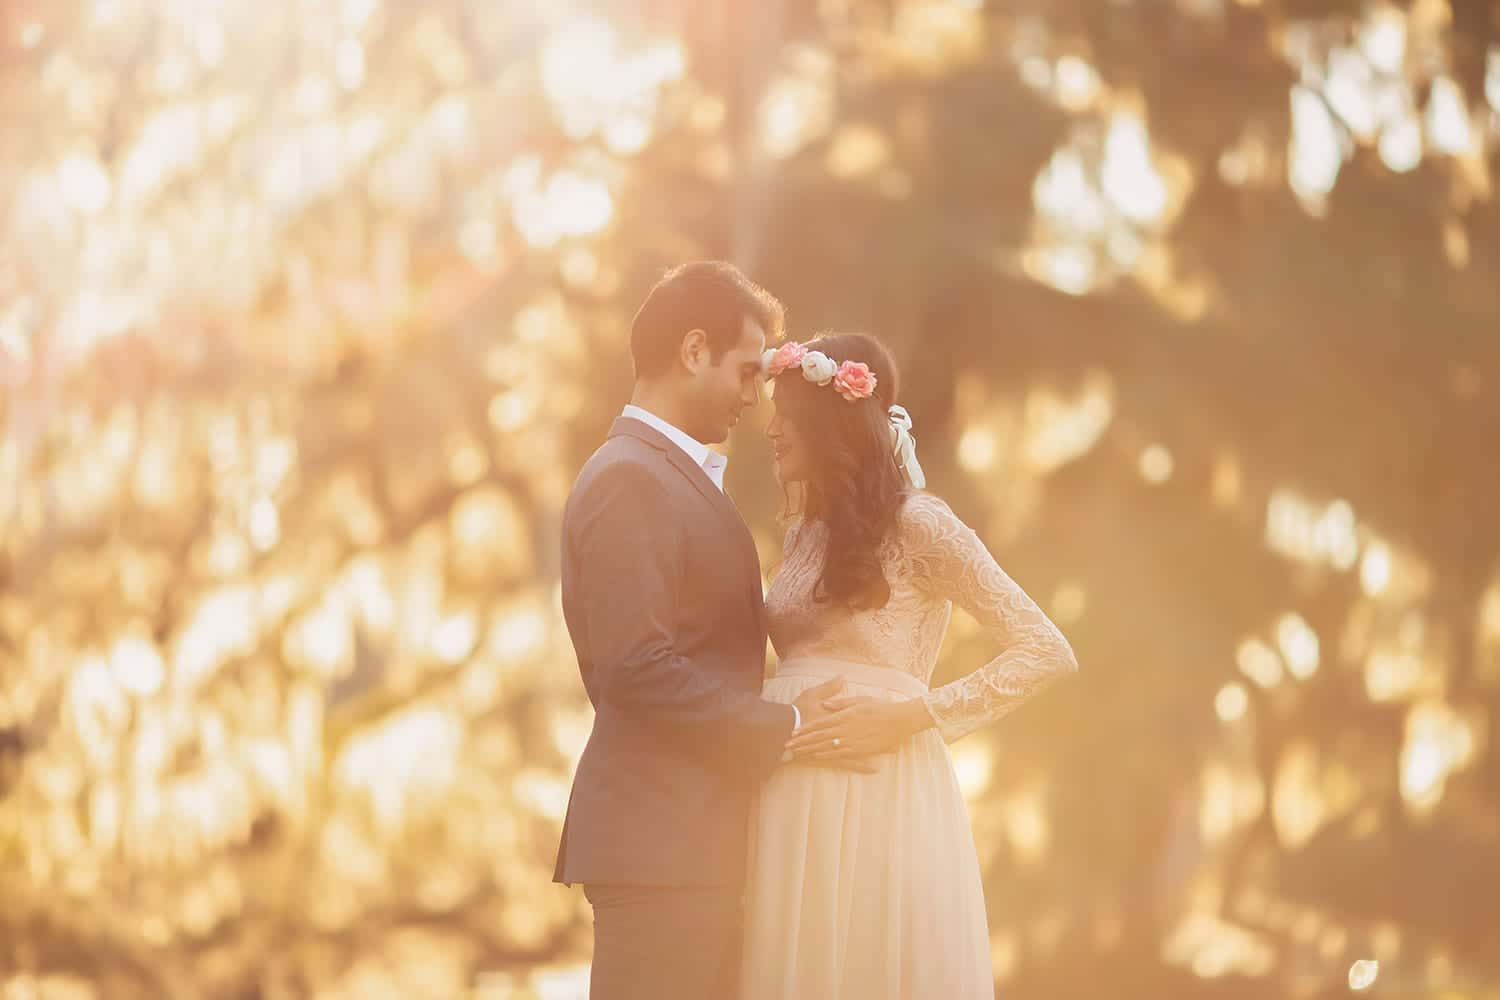 maternity session in mandeville la at sunset with mother in blush gown